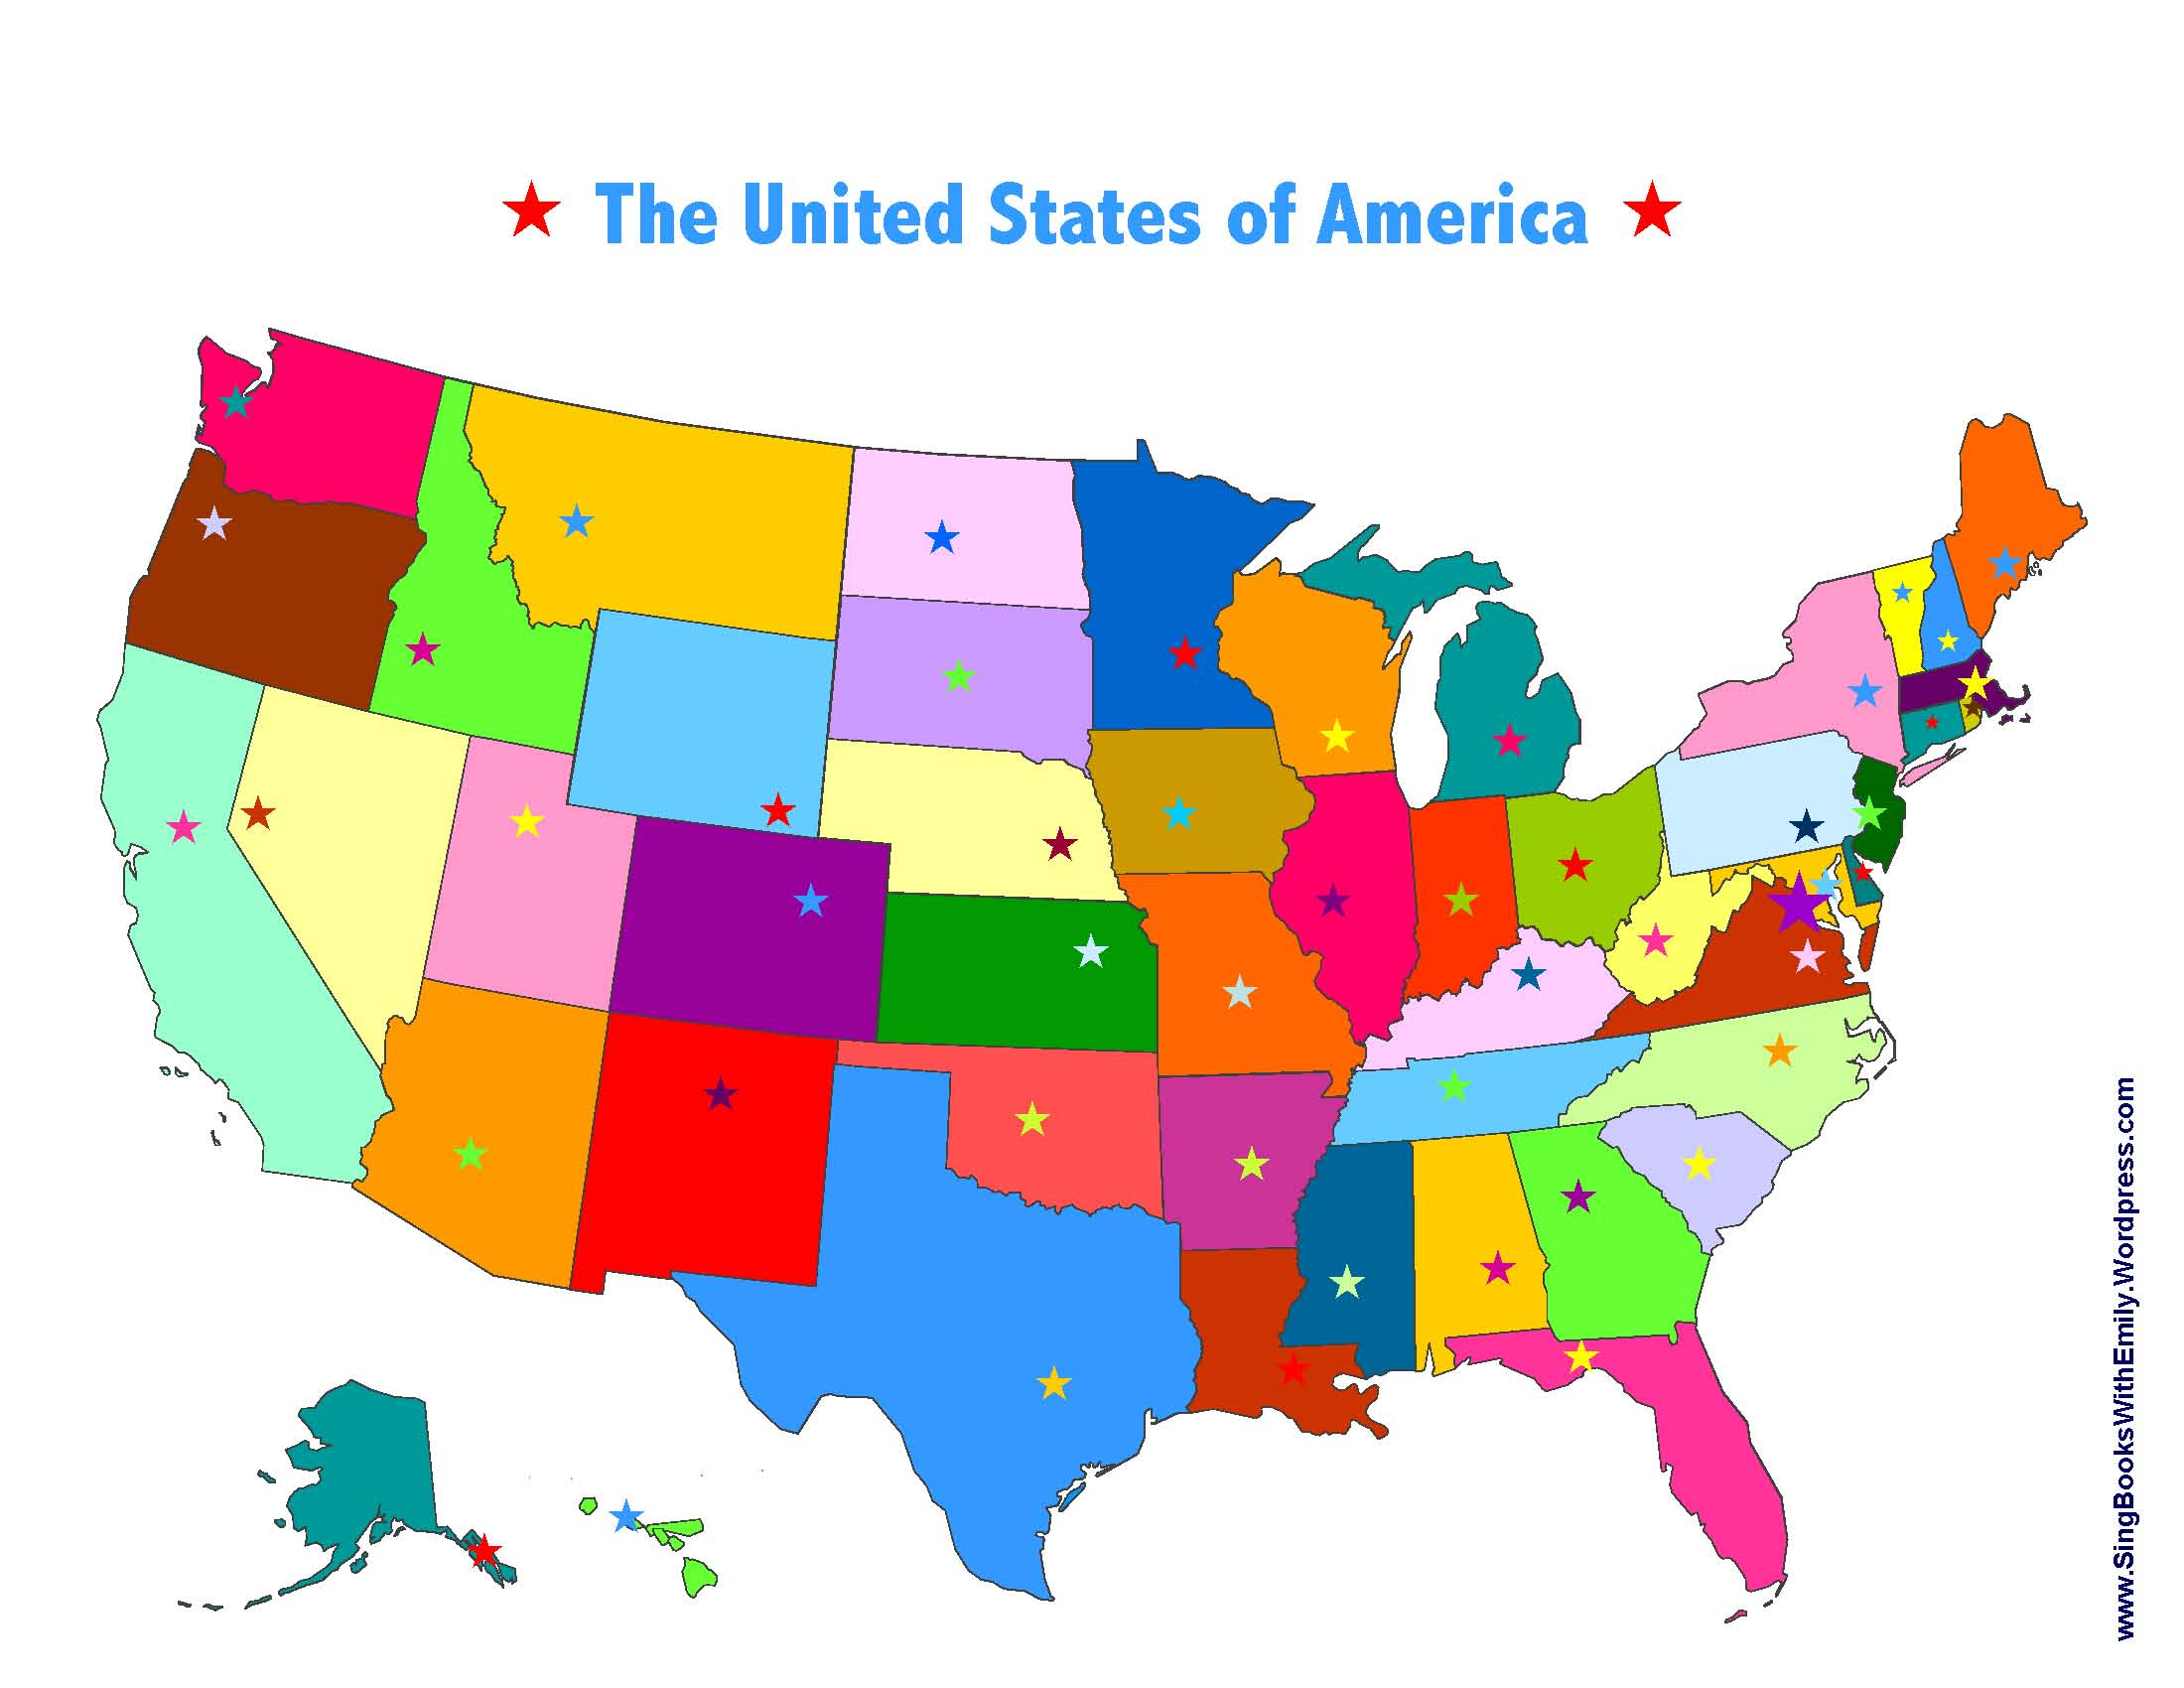 map of the united states of america with full state names